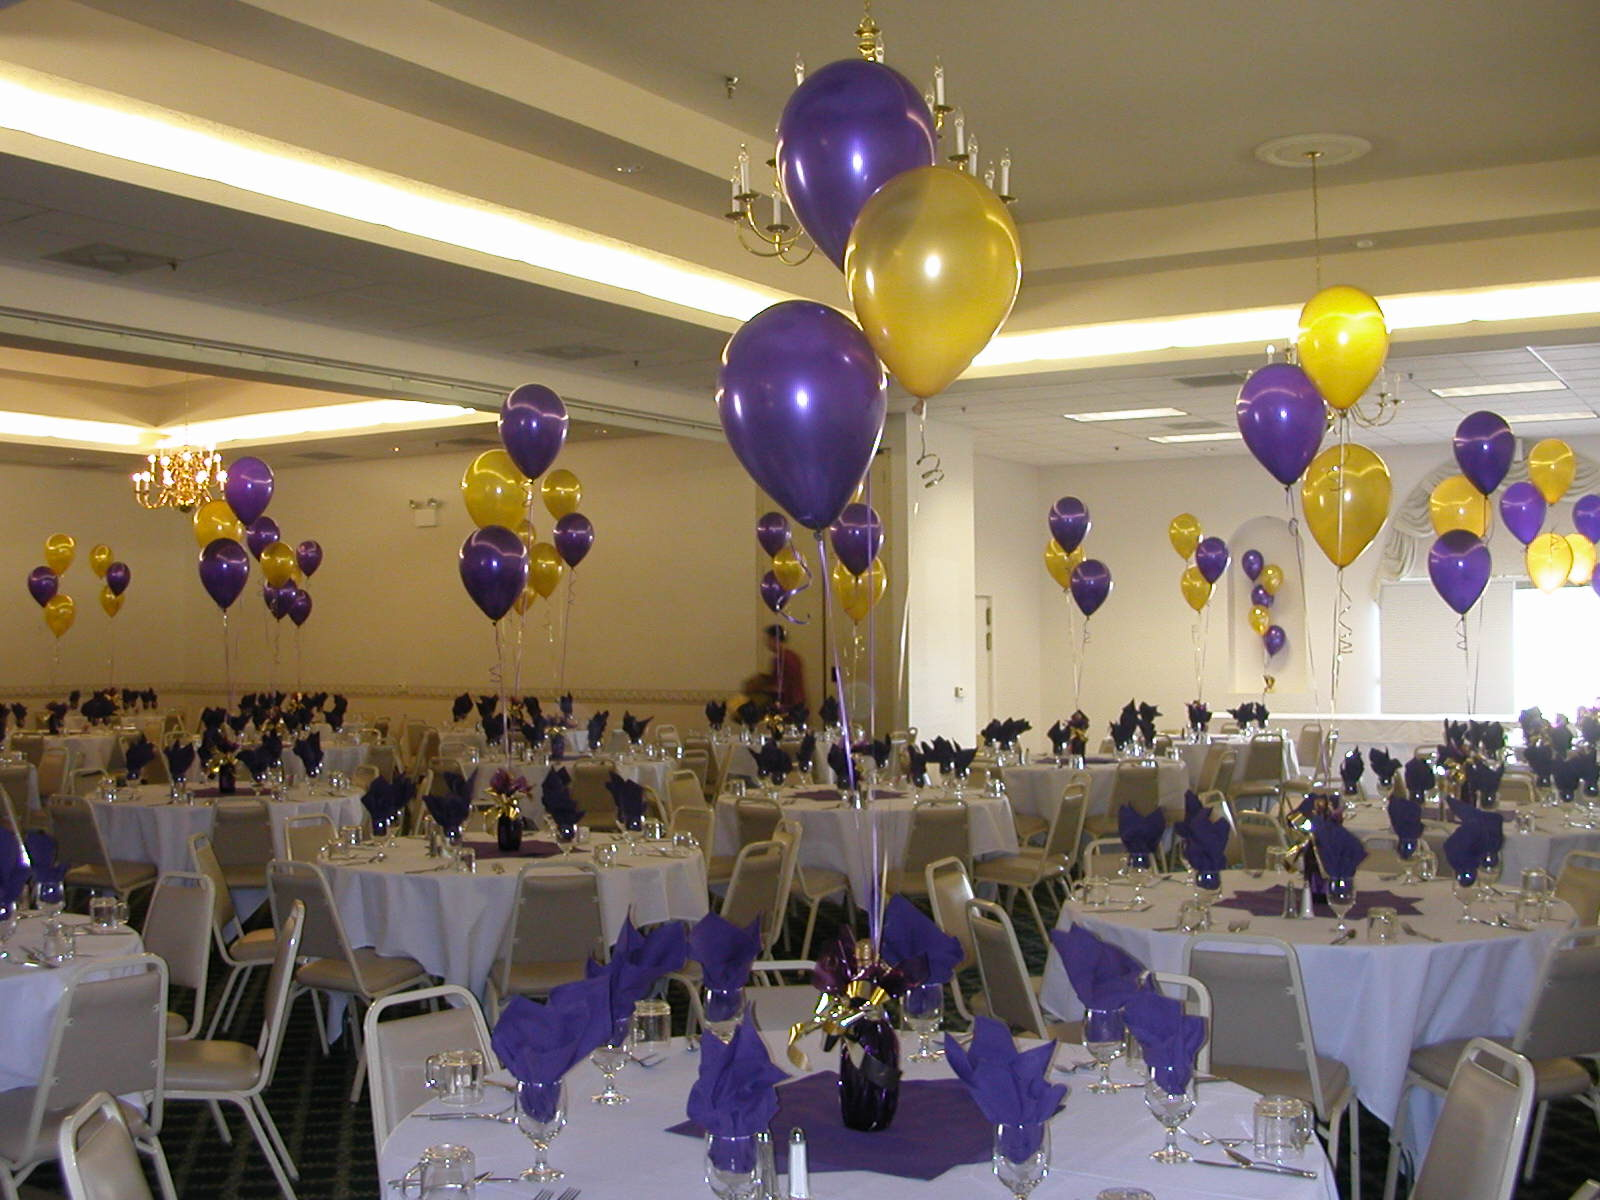 Photograph balloon decor of central california centerpiece for Balloon decoration ideas for graduation